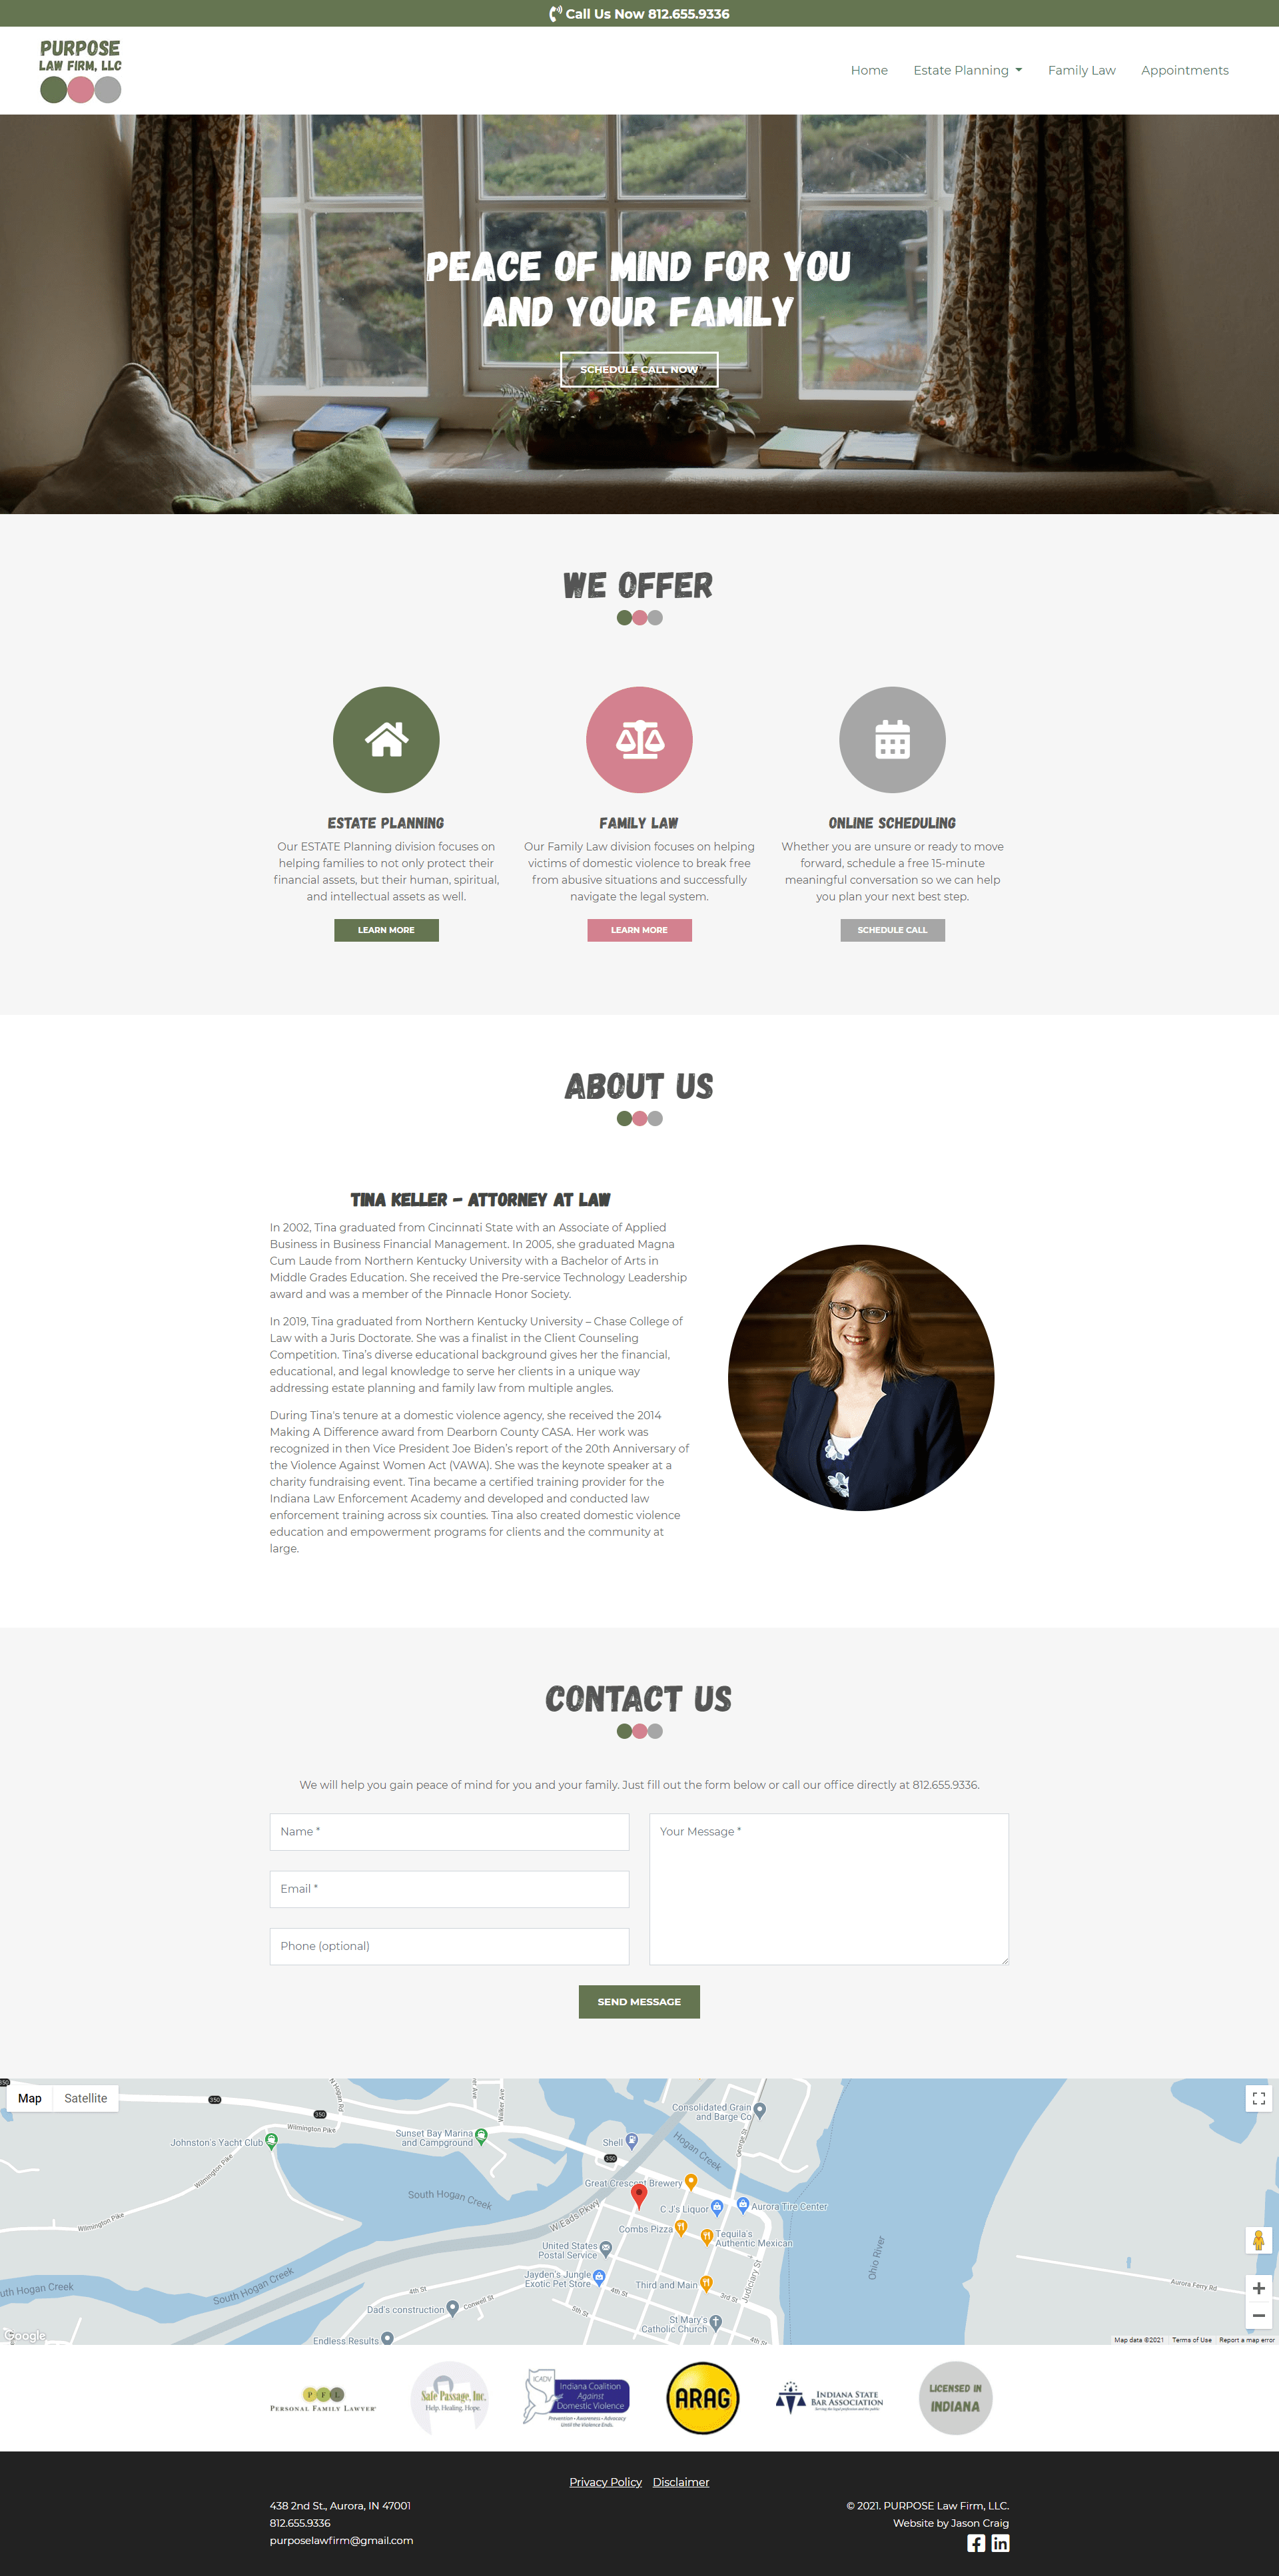 Purpose Law Firm's website homepage layout.